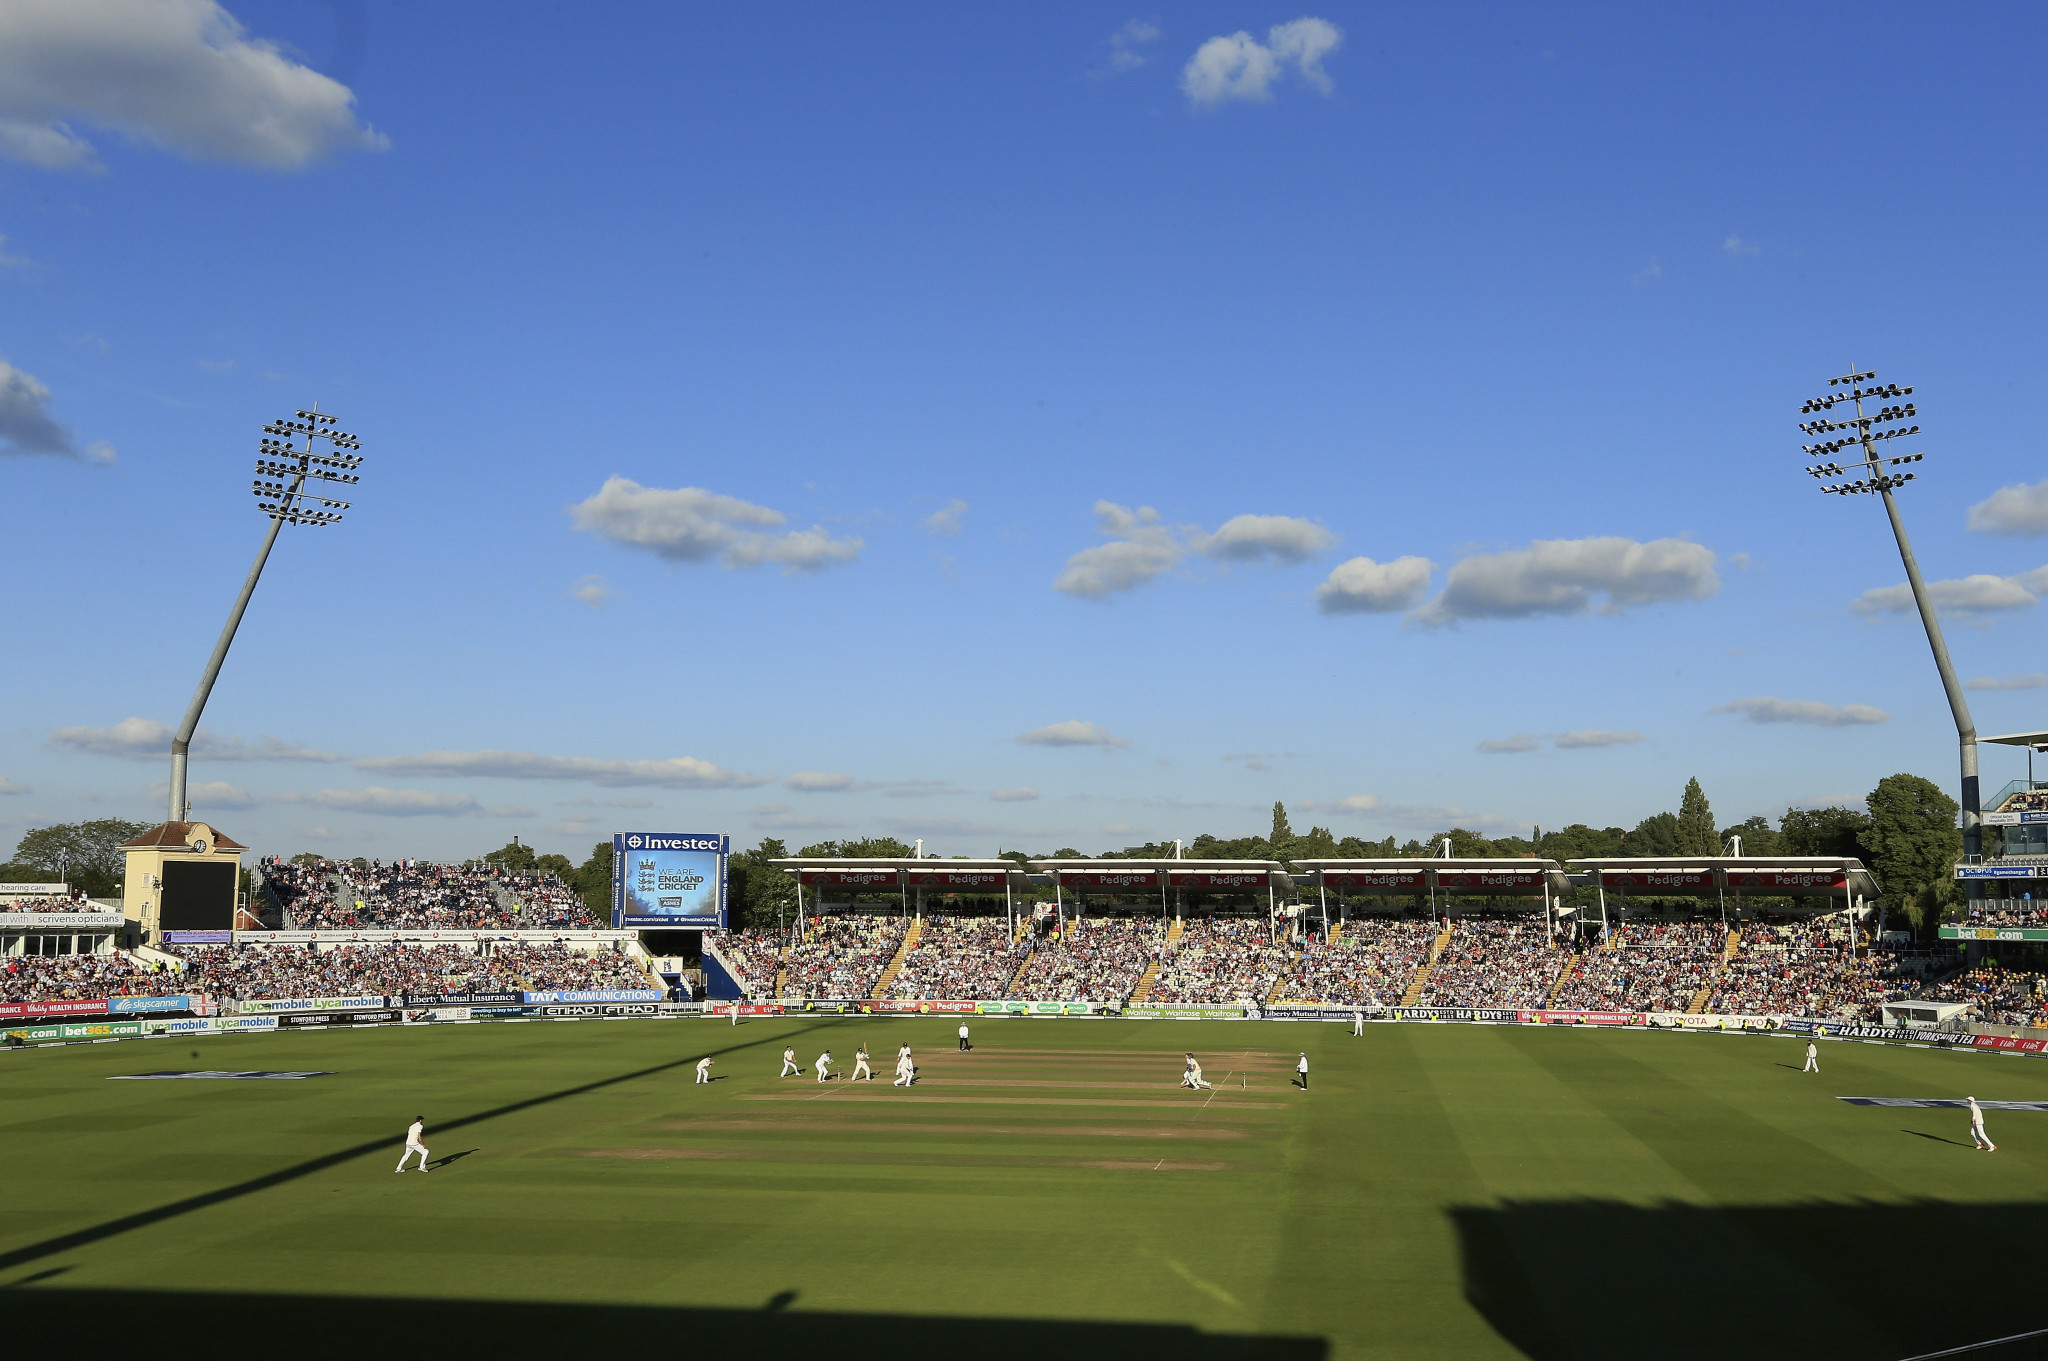 The Ashes series between England and Australia began at Edgbaston in Birmingham this week ©Getty Images